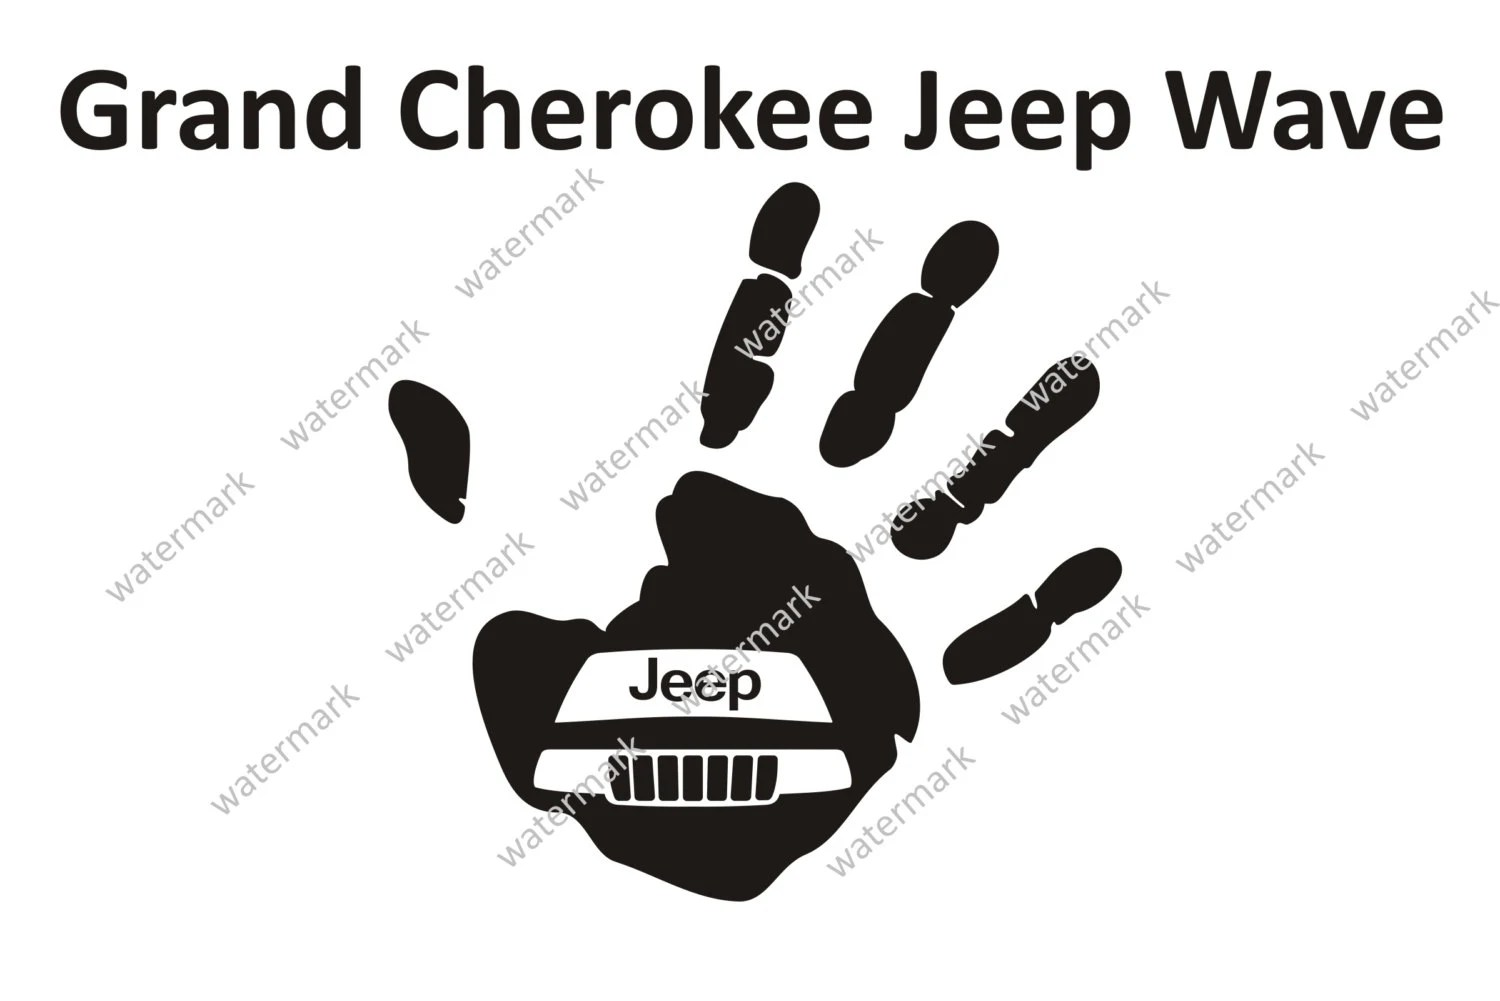 Jeep Grand Cherokee Logo Jeep Wave Decal Sticker By Robnmon